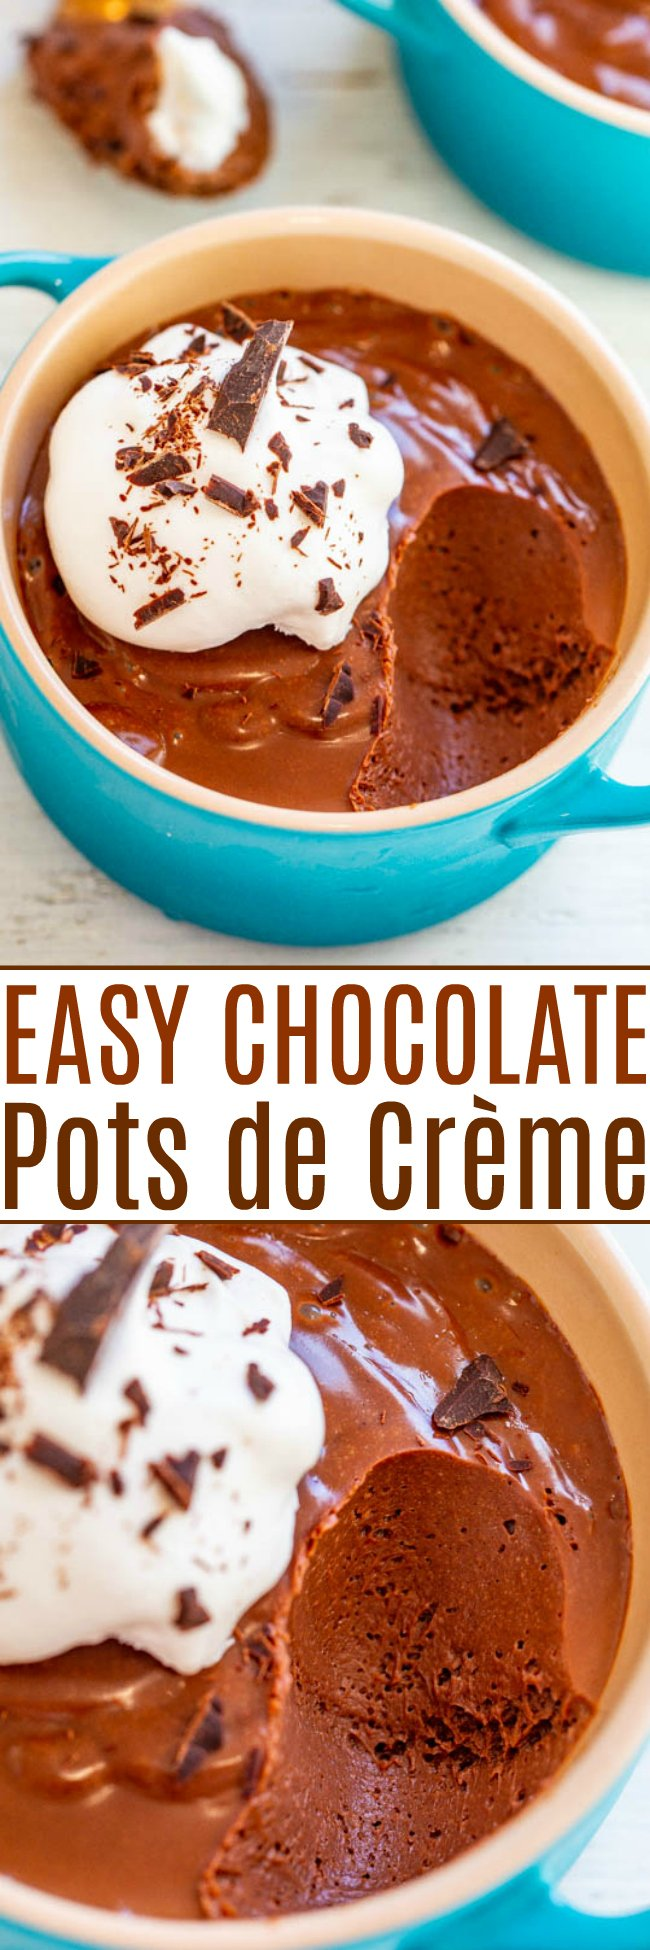 Easy Chocolate Pots de Crème - No-bake, no-cook, and made in a blender in 5 minutes!! The PERFECT dessert! Rich, decadent, a chocolate lover's dream, perfect for special occasions, and guaranteed to impress!!